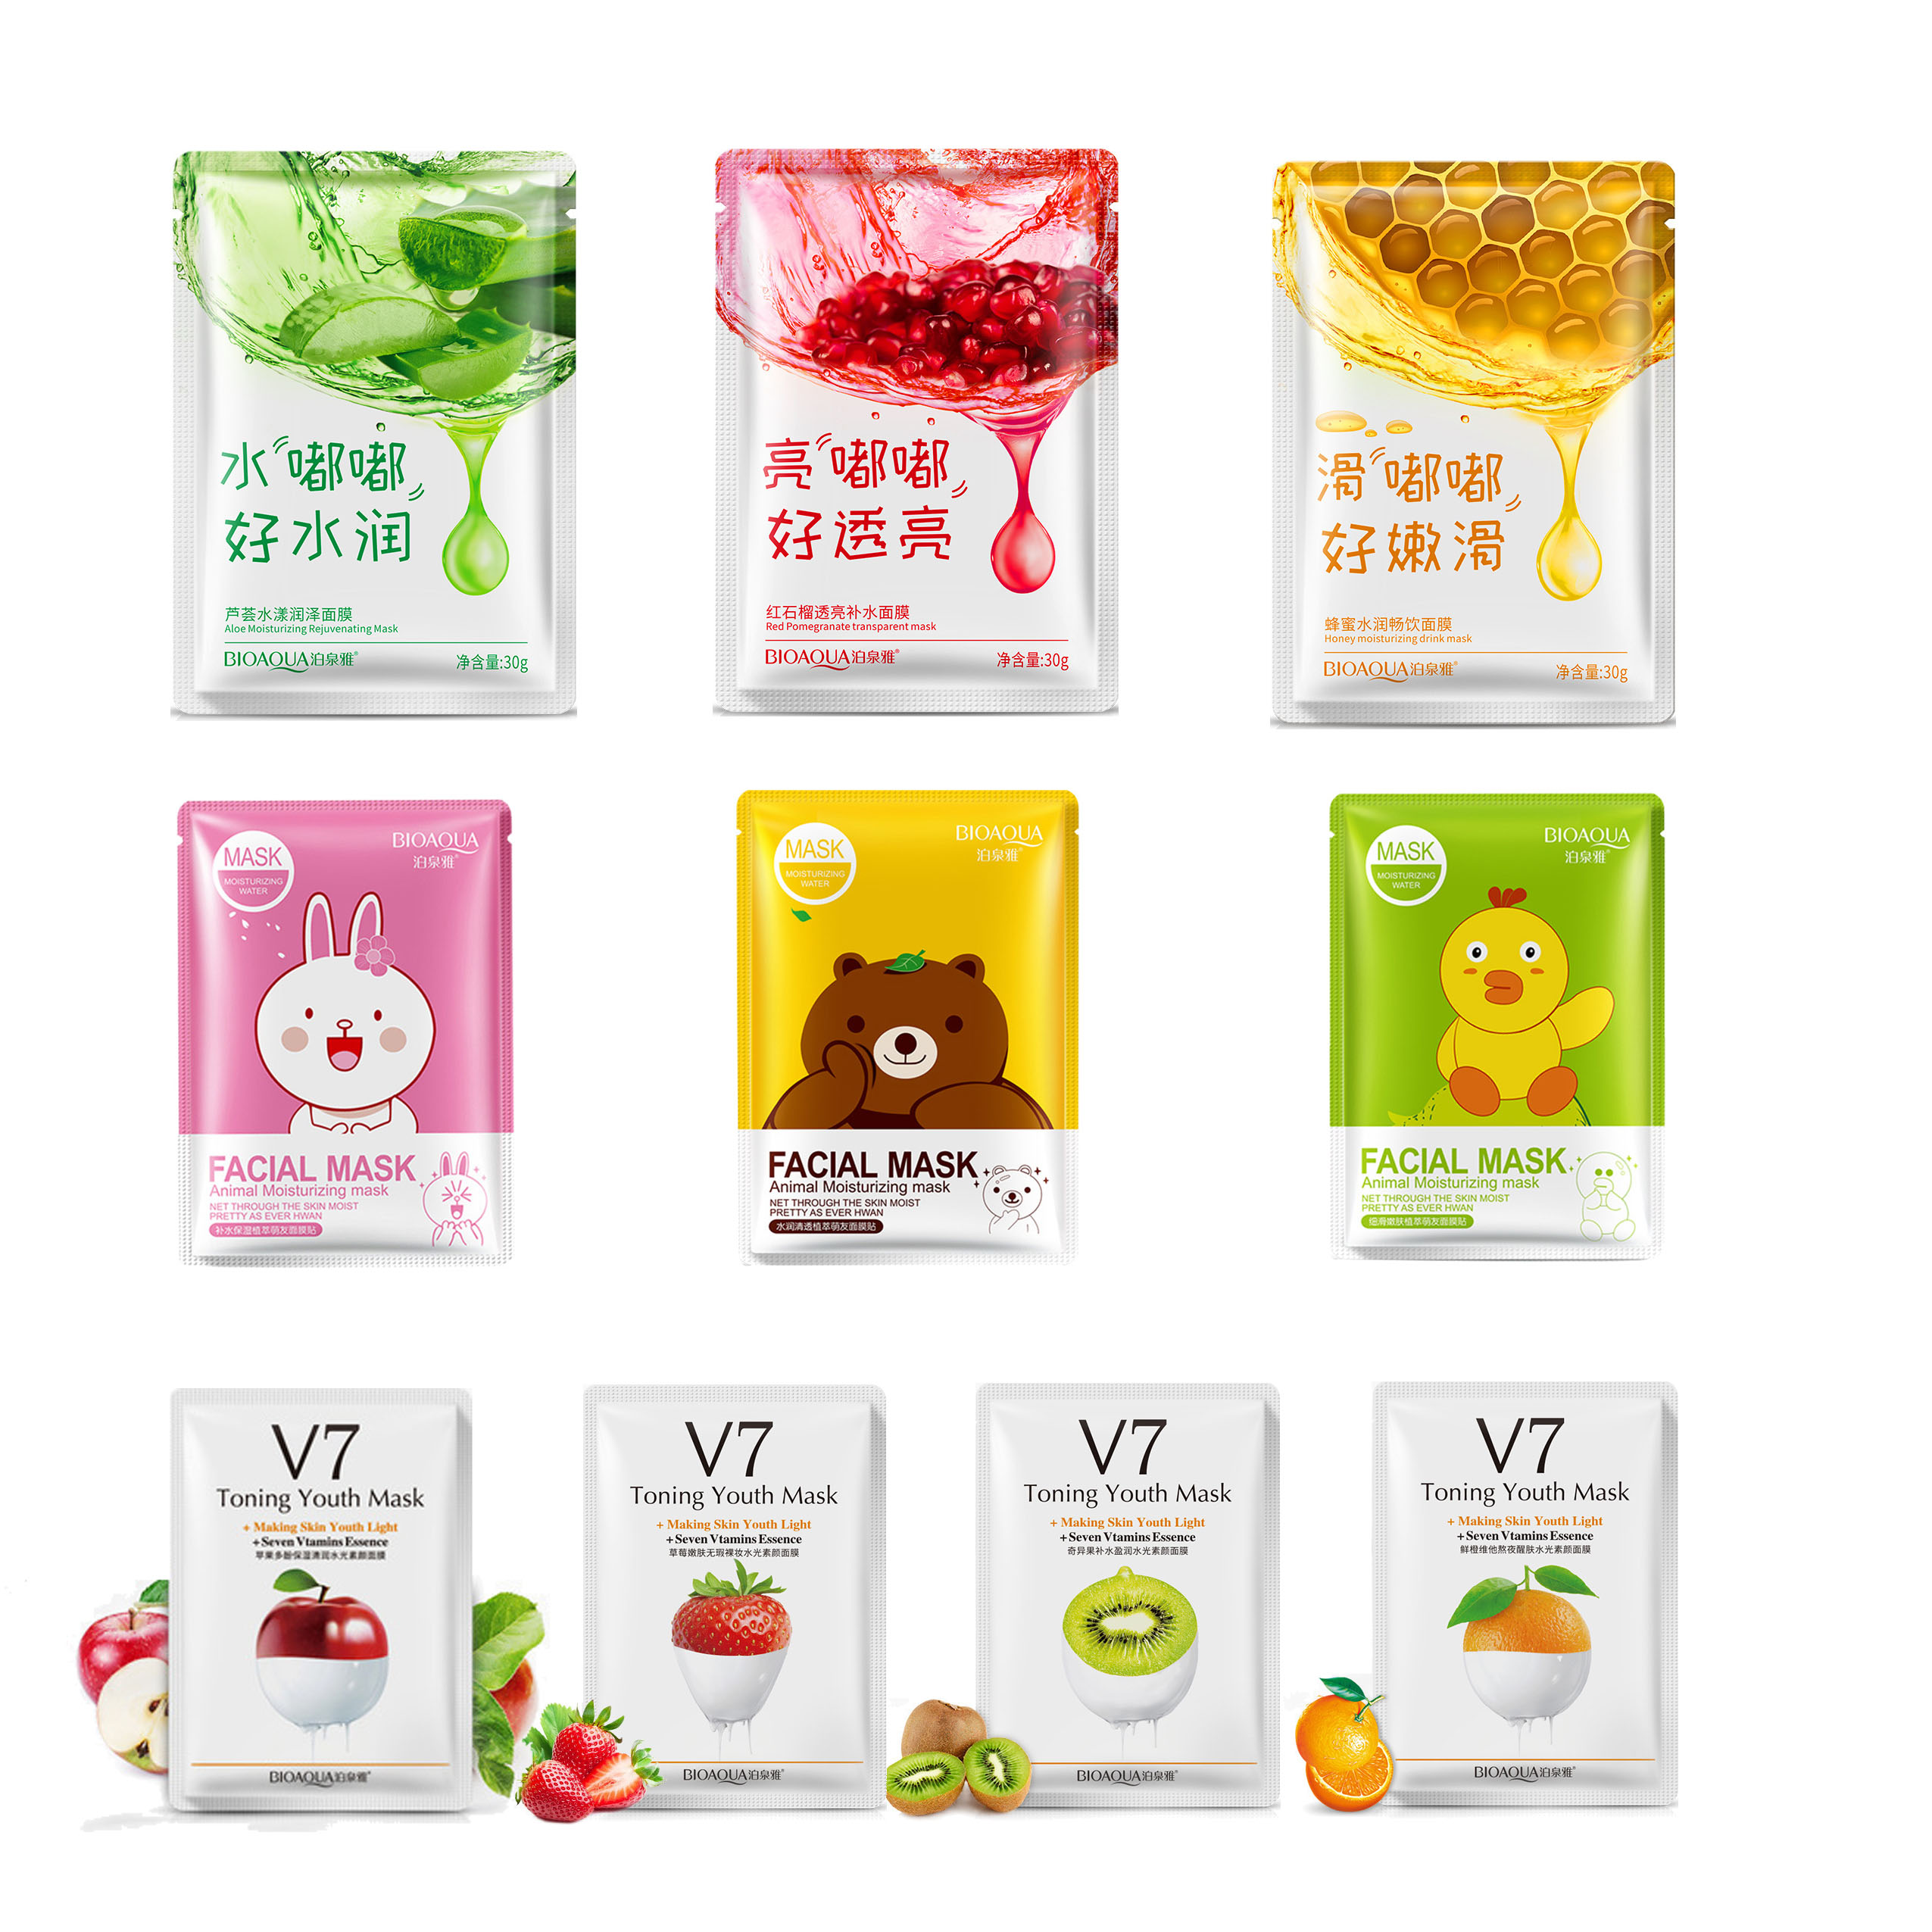 BIOAQUA Animal Toning Youth Plant Sheet Mask Moisturizing Hydrating Tendering Nourishing Rejuvenation Face Mask Skin Care